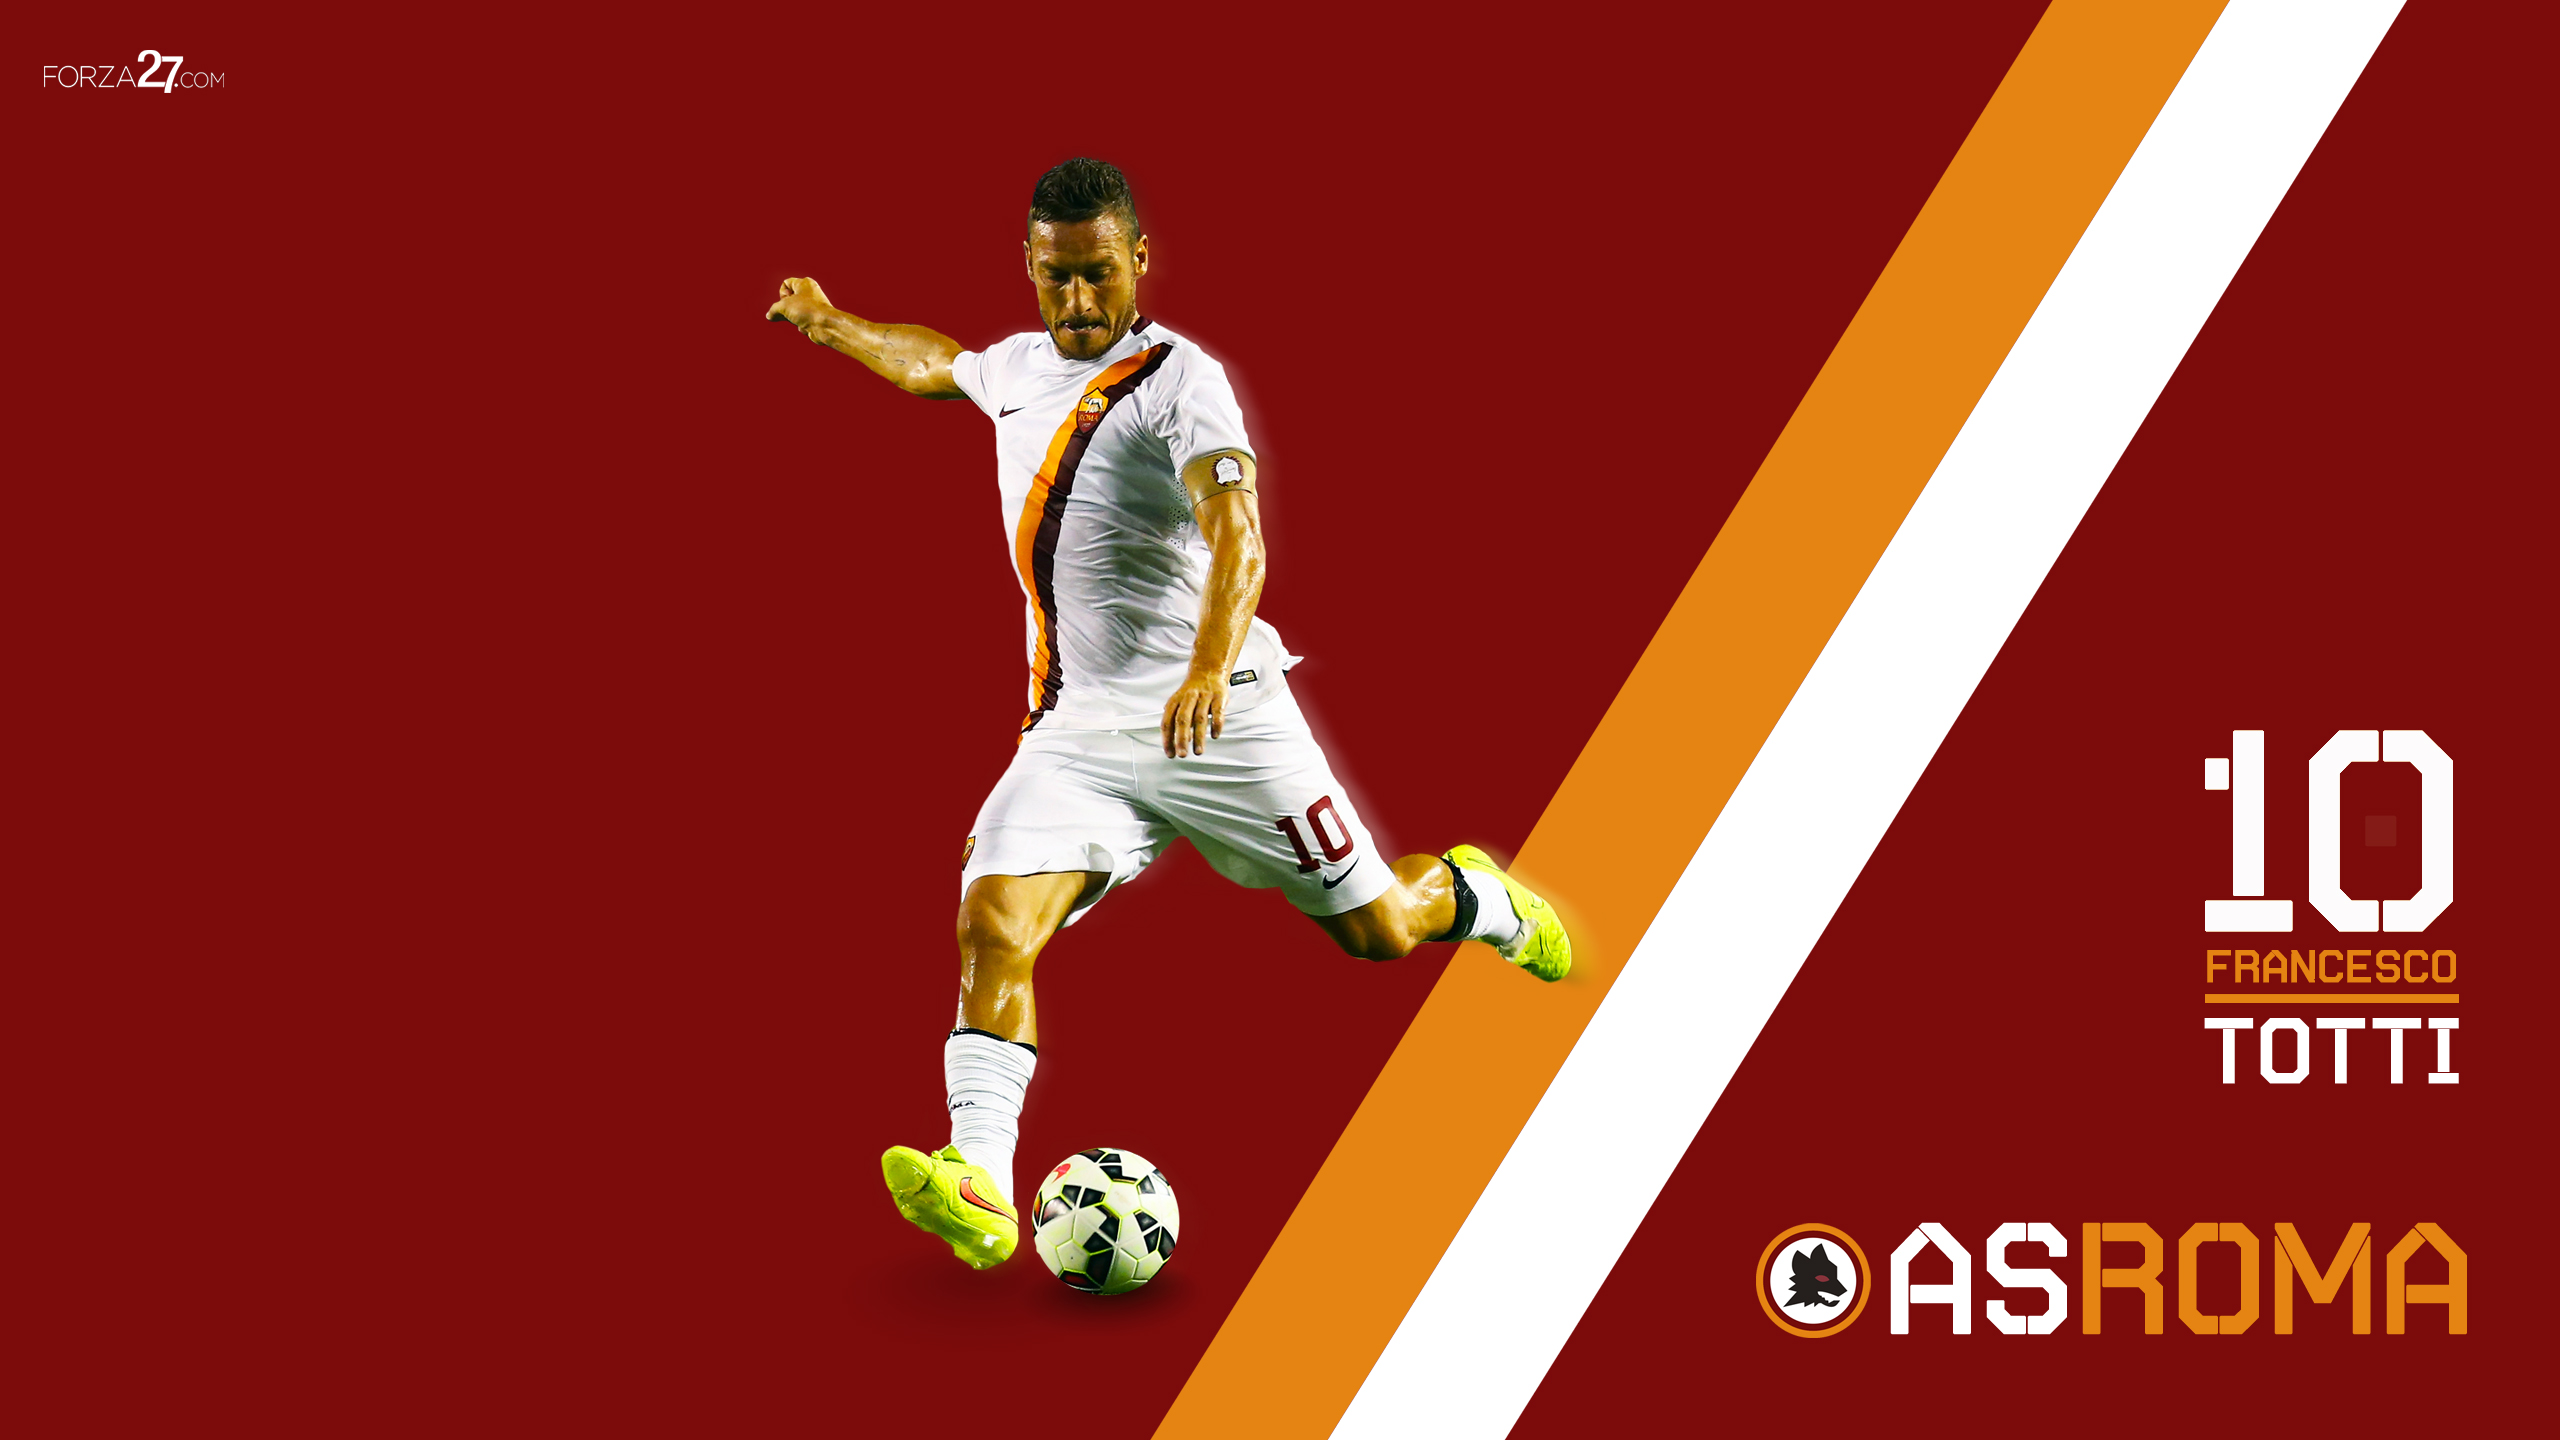 TOTTI_2015_red_forza27